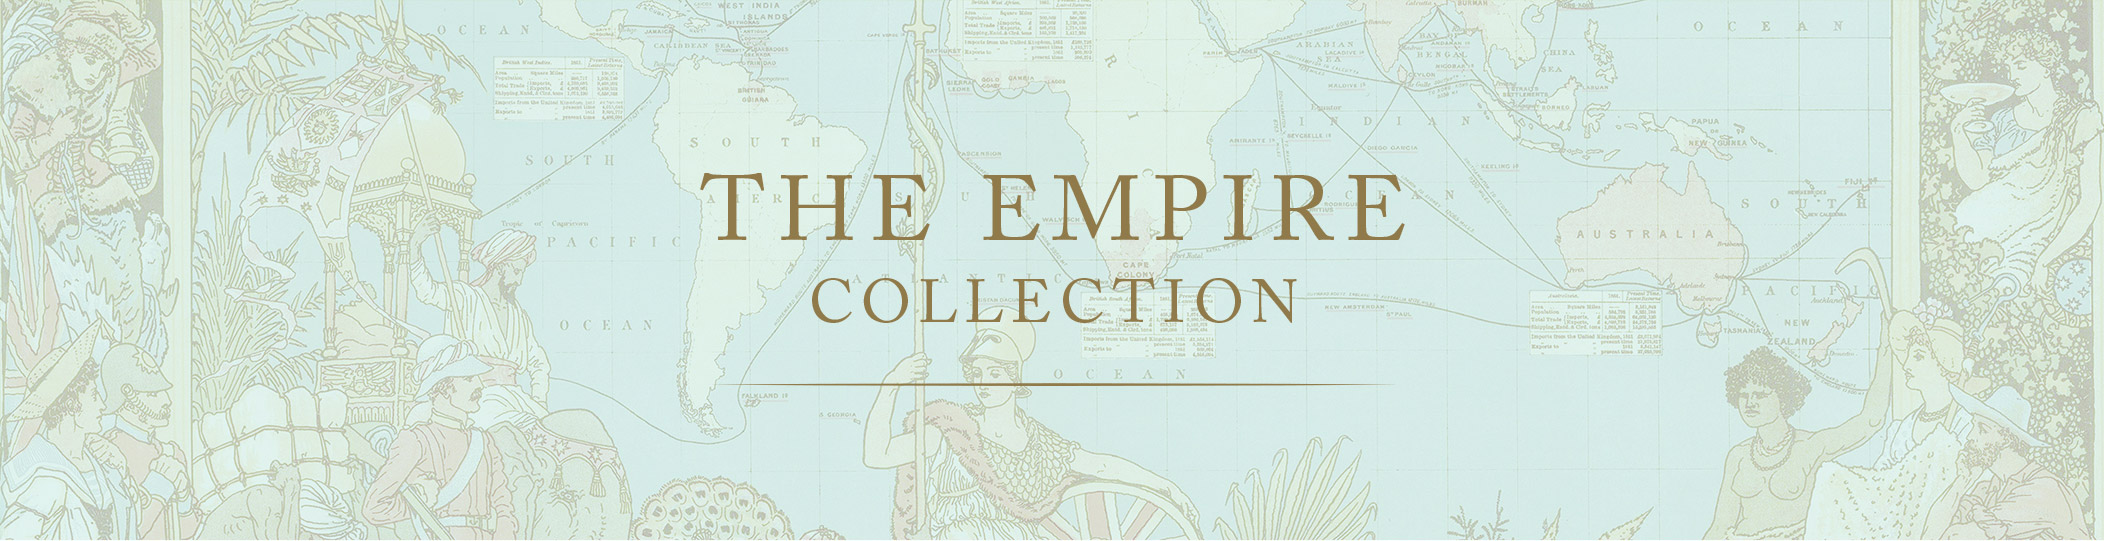 The Empire Collection